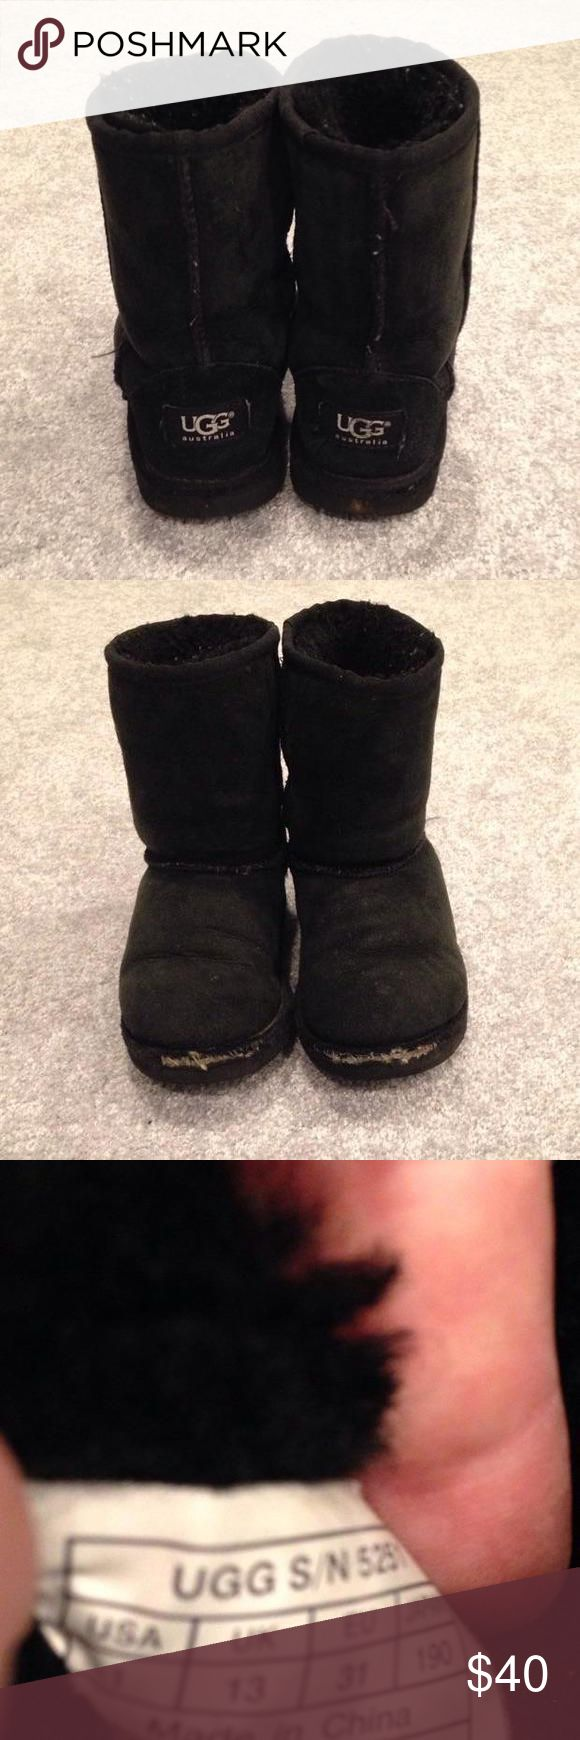 "📣SALE📣  UGG Black Boots - Kids Size 1 📣SALE📣  These Kids Size 1 (US) Authentic UGG boots (purchased at Nordstrom) are yours for a fraction of the cost!!  From heel to top of boot is almost 8"" (inches).  These are in pre-loved condition, which you can see.  One thing about UGG boots, kids love 'em!  All sales are final. UGG Australia Shoes"